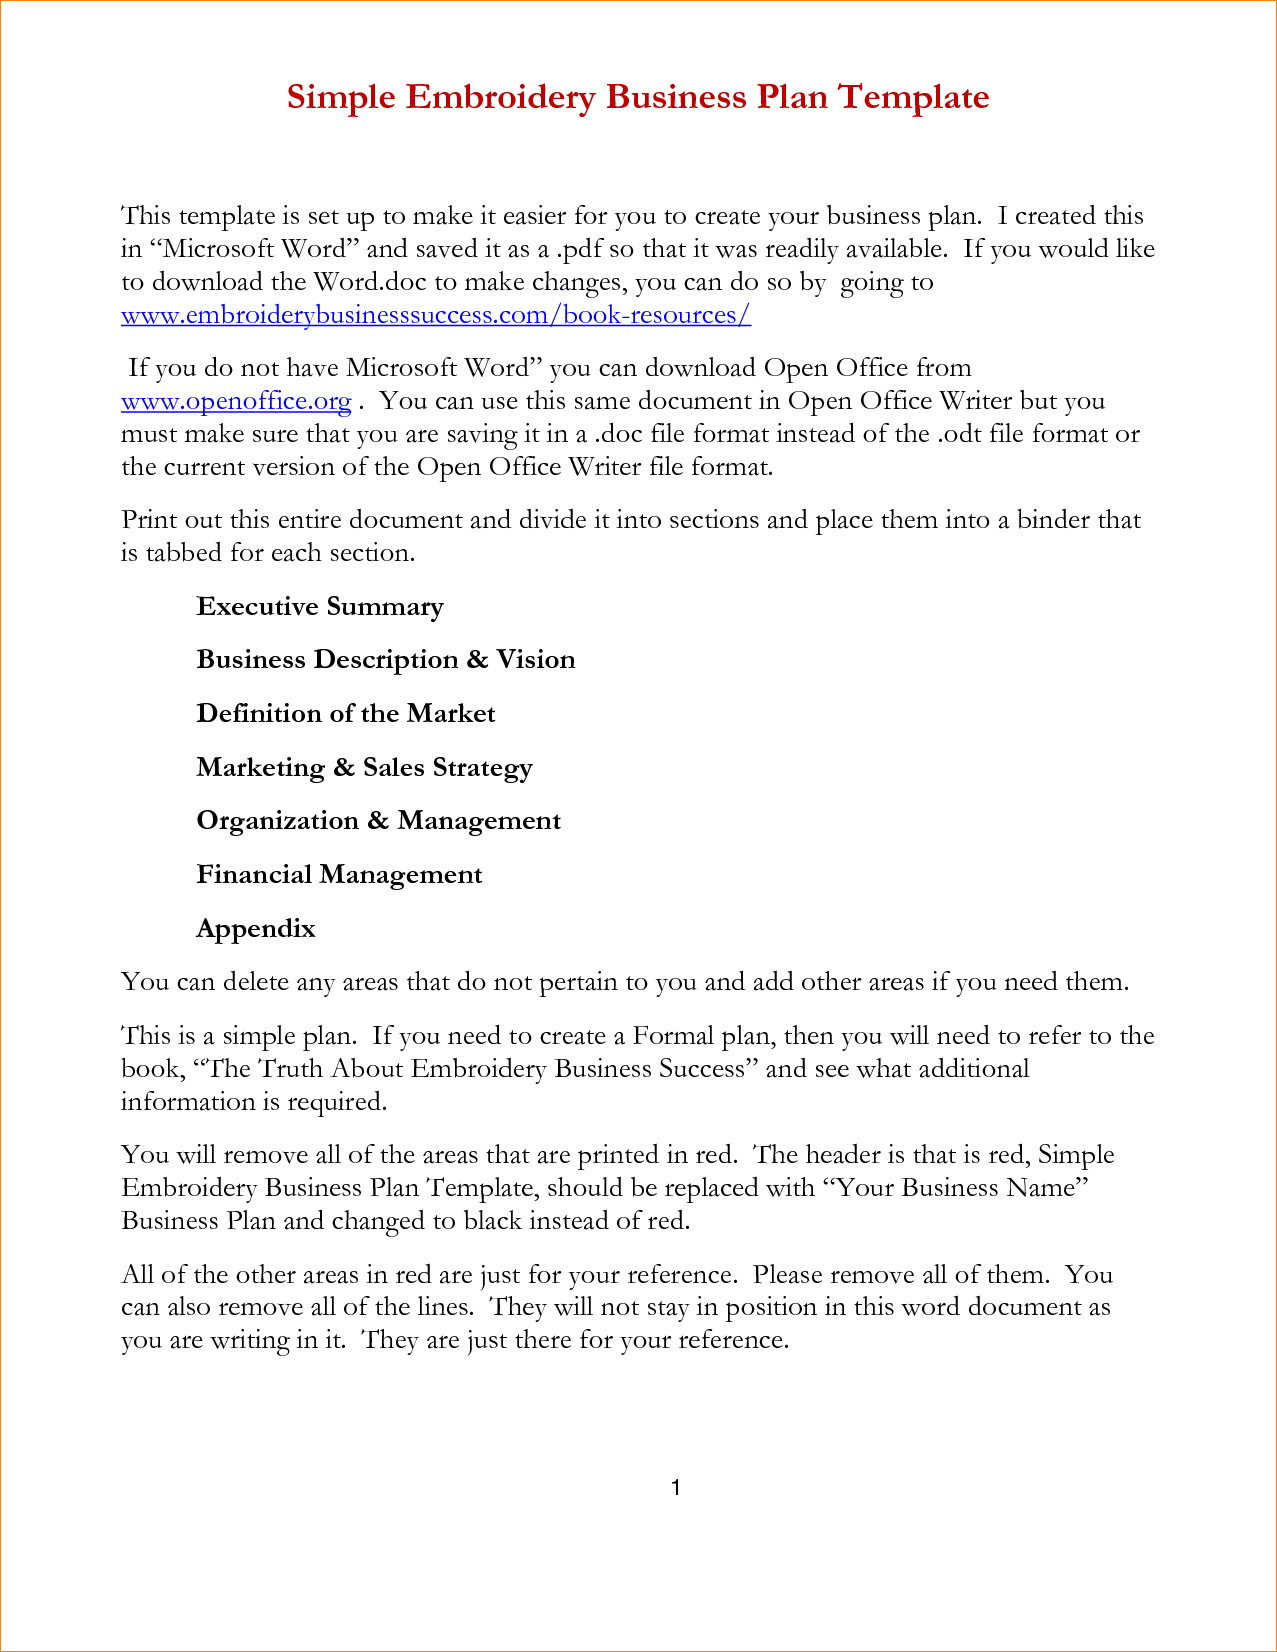 Free Word Business Plan Template Templates Unforgettable Ms One For Business Plan Template Free Word Document